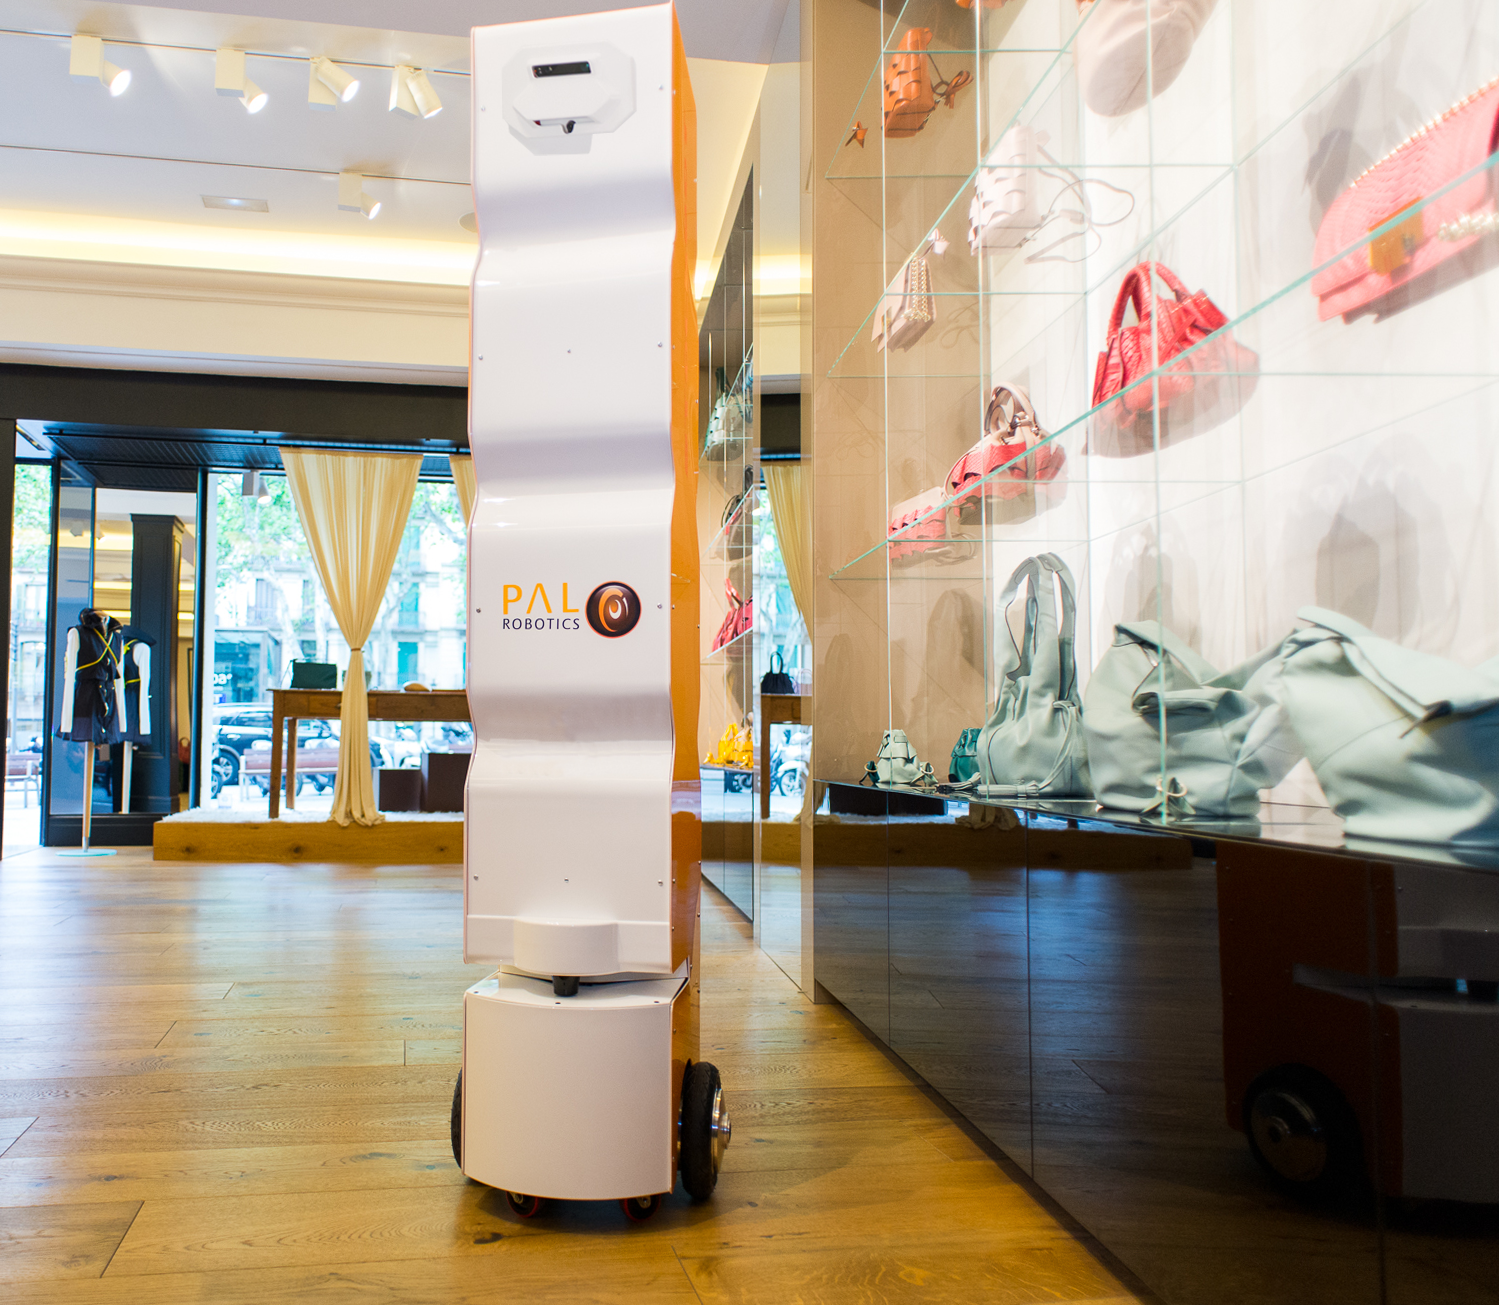 StockBot-camera-vision-RFID-robot-PAL-retail